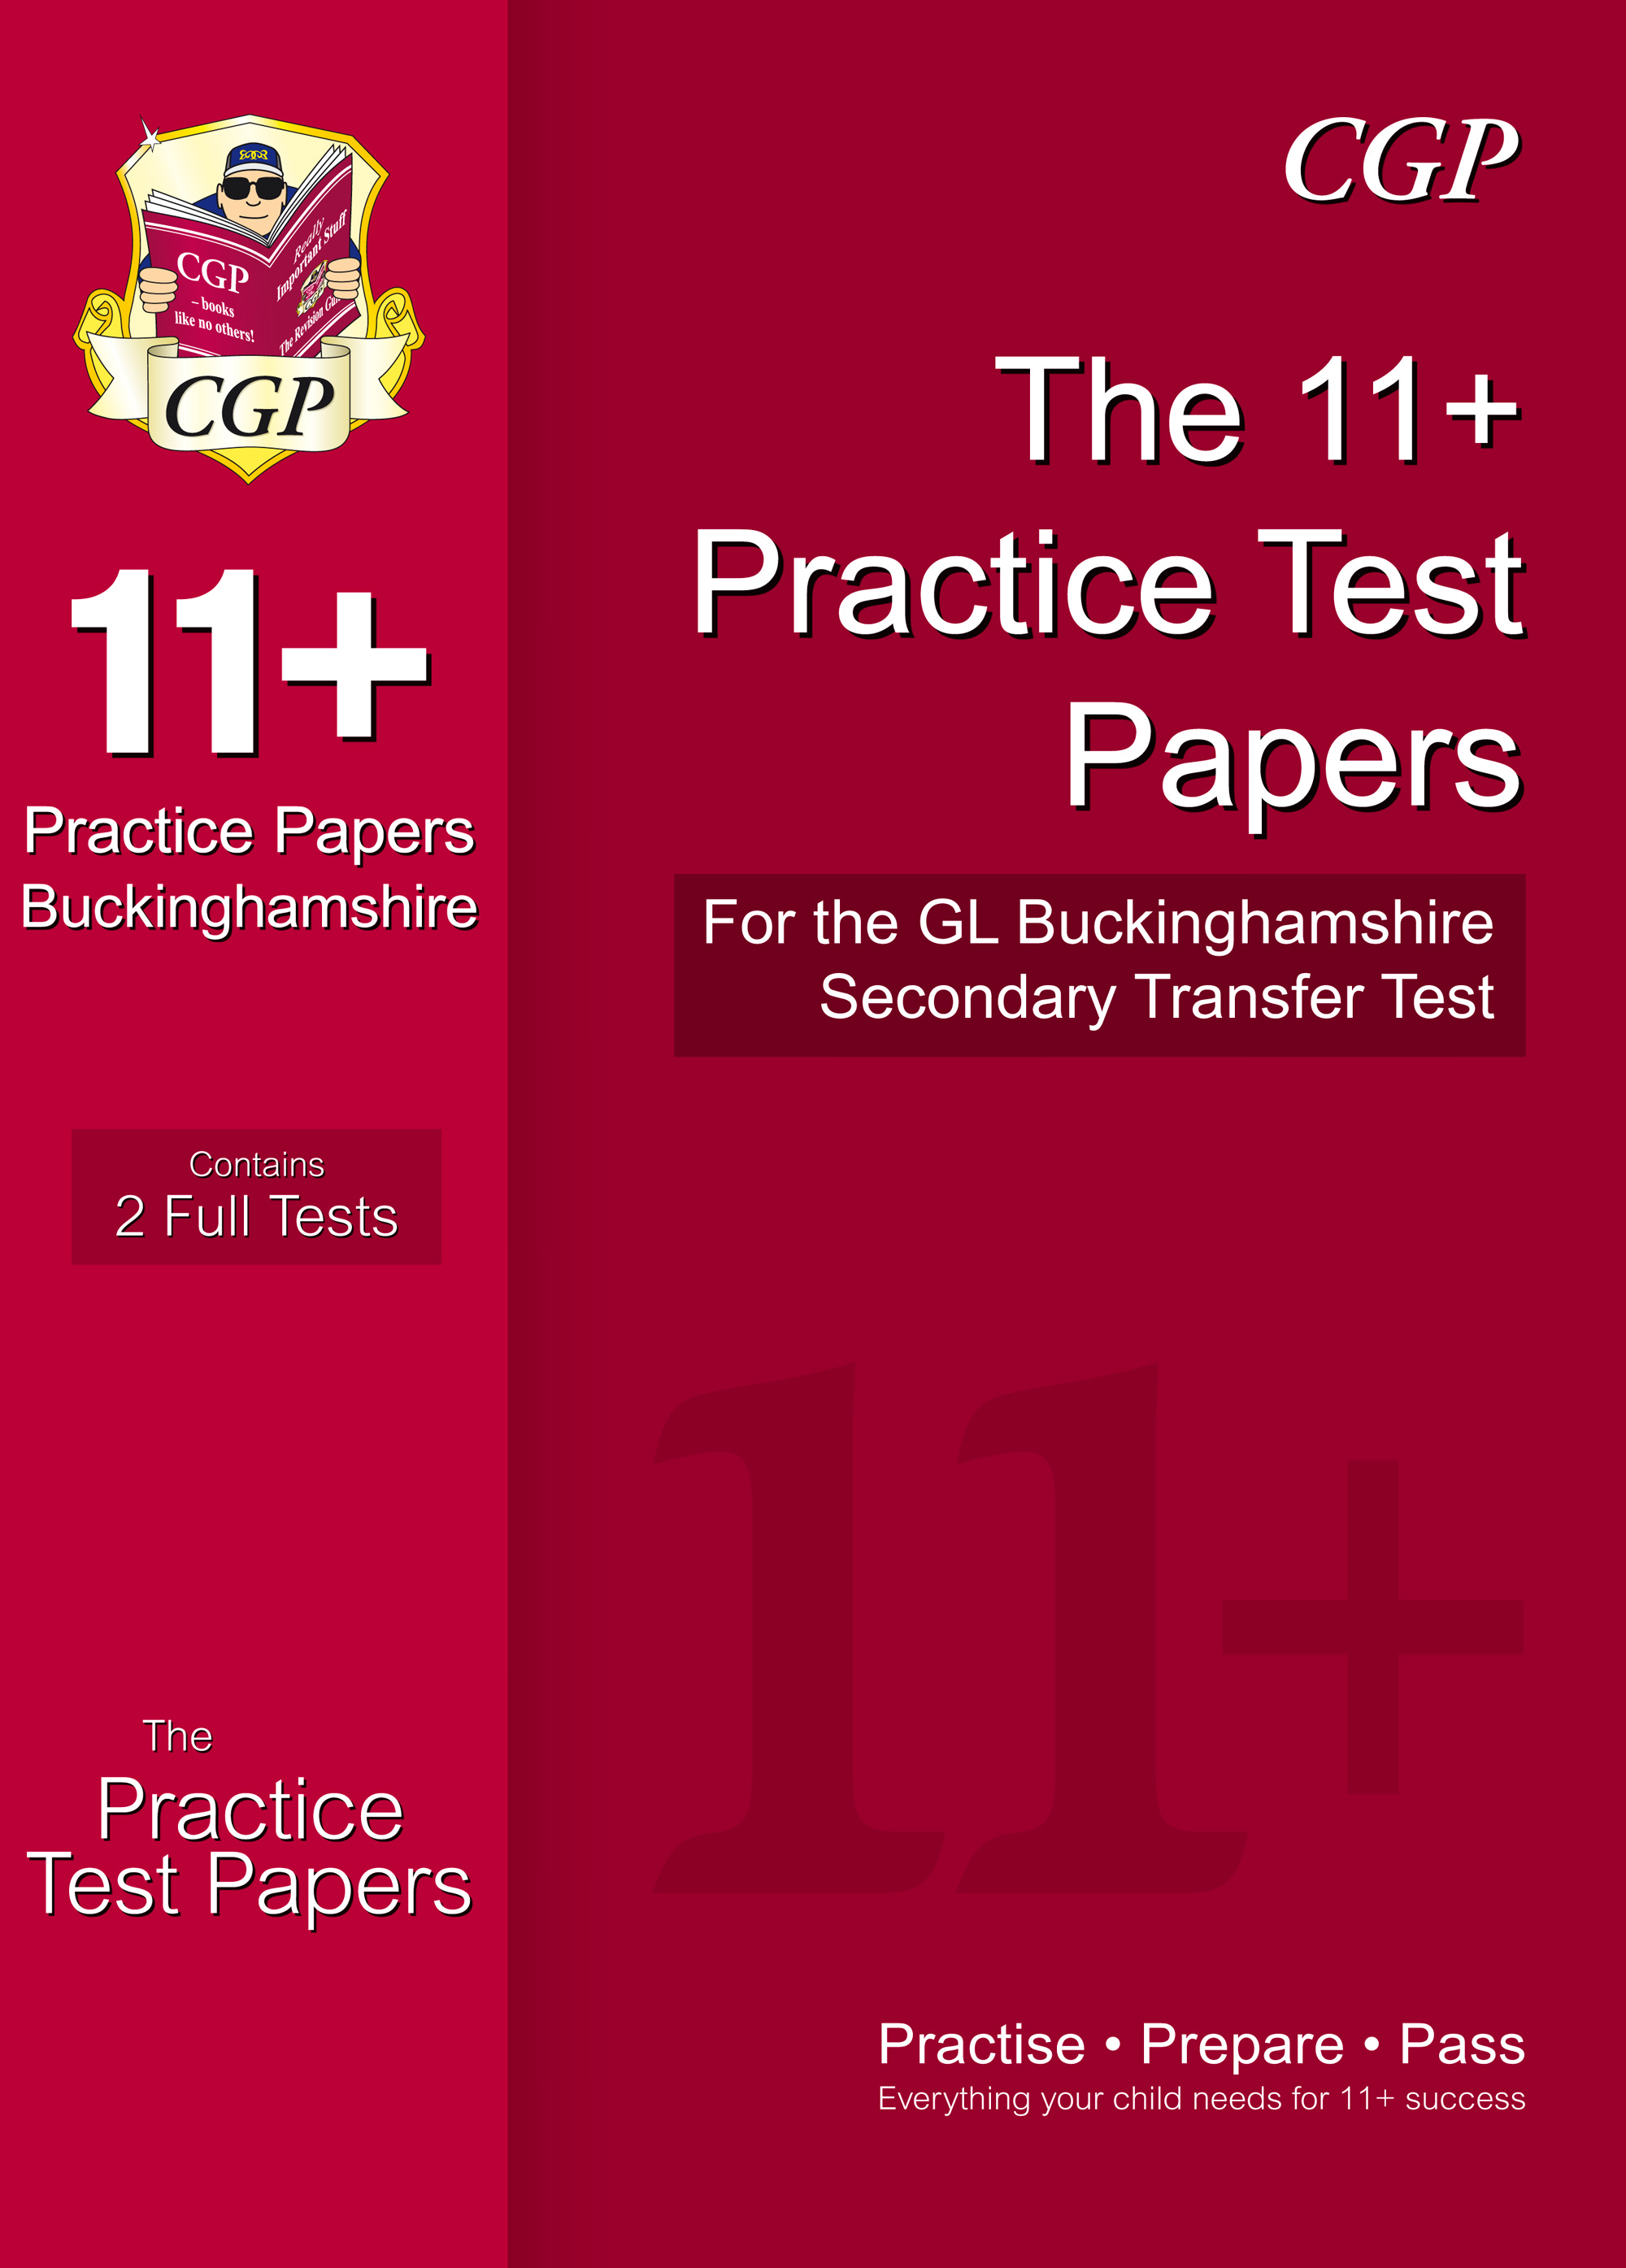 ELPCE1 - Buckinghamshire 11+ GL Practice Papers for the Secondary Transfer Test - New for 2018